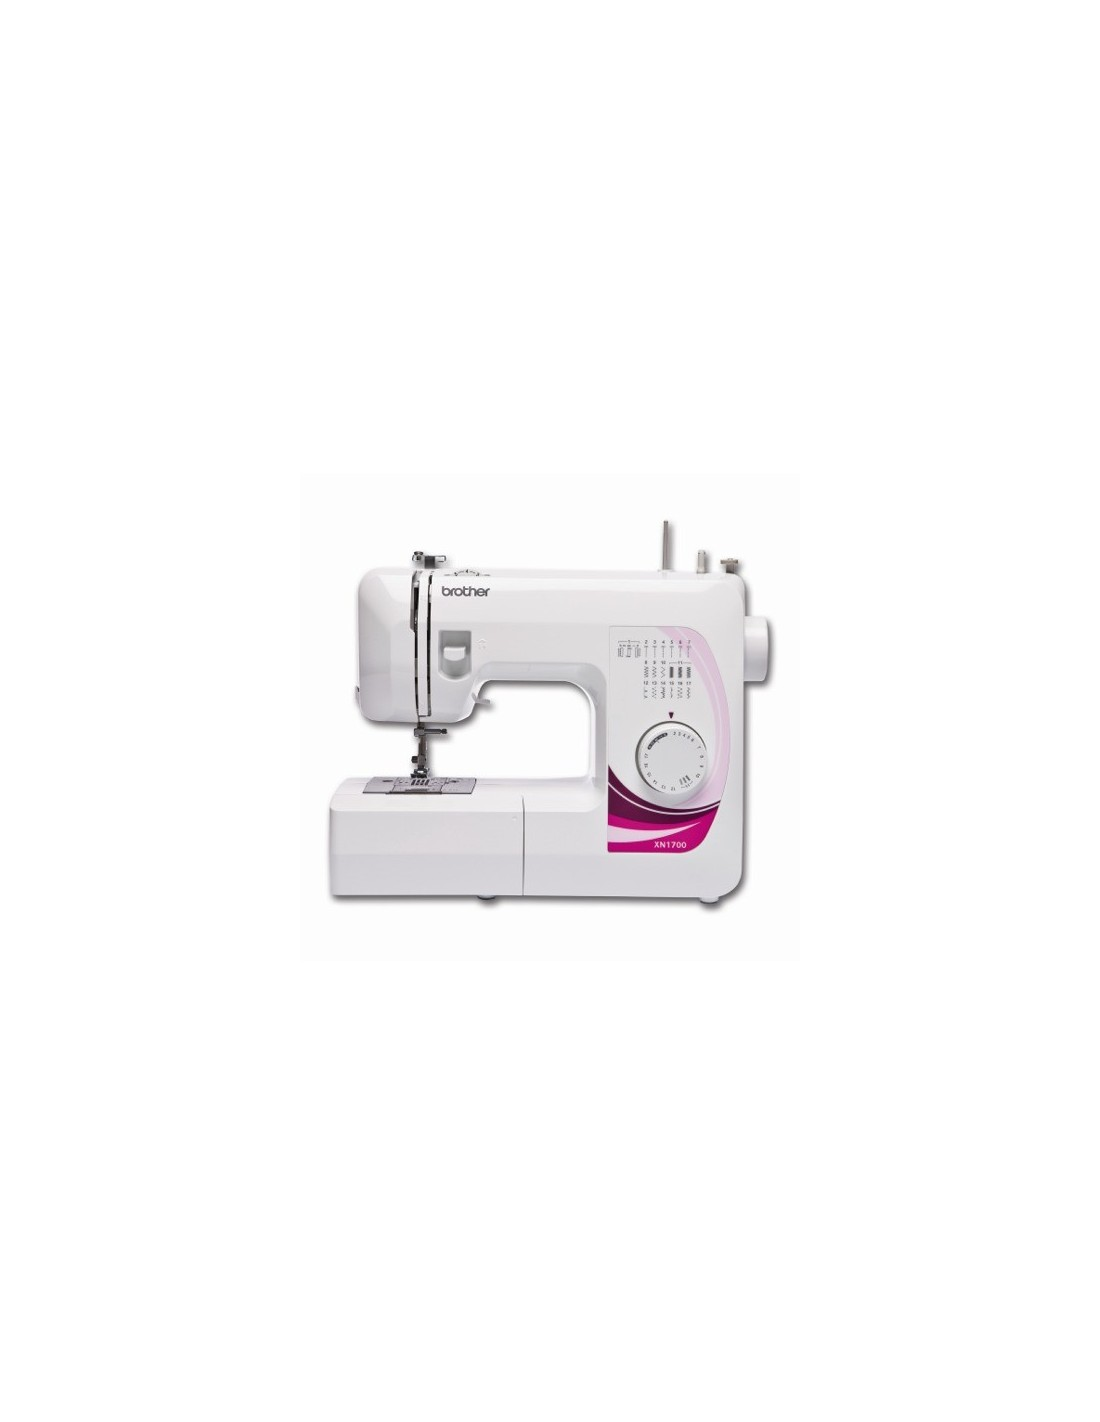 xn1700 sewing machine